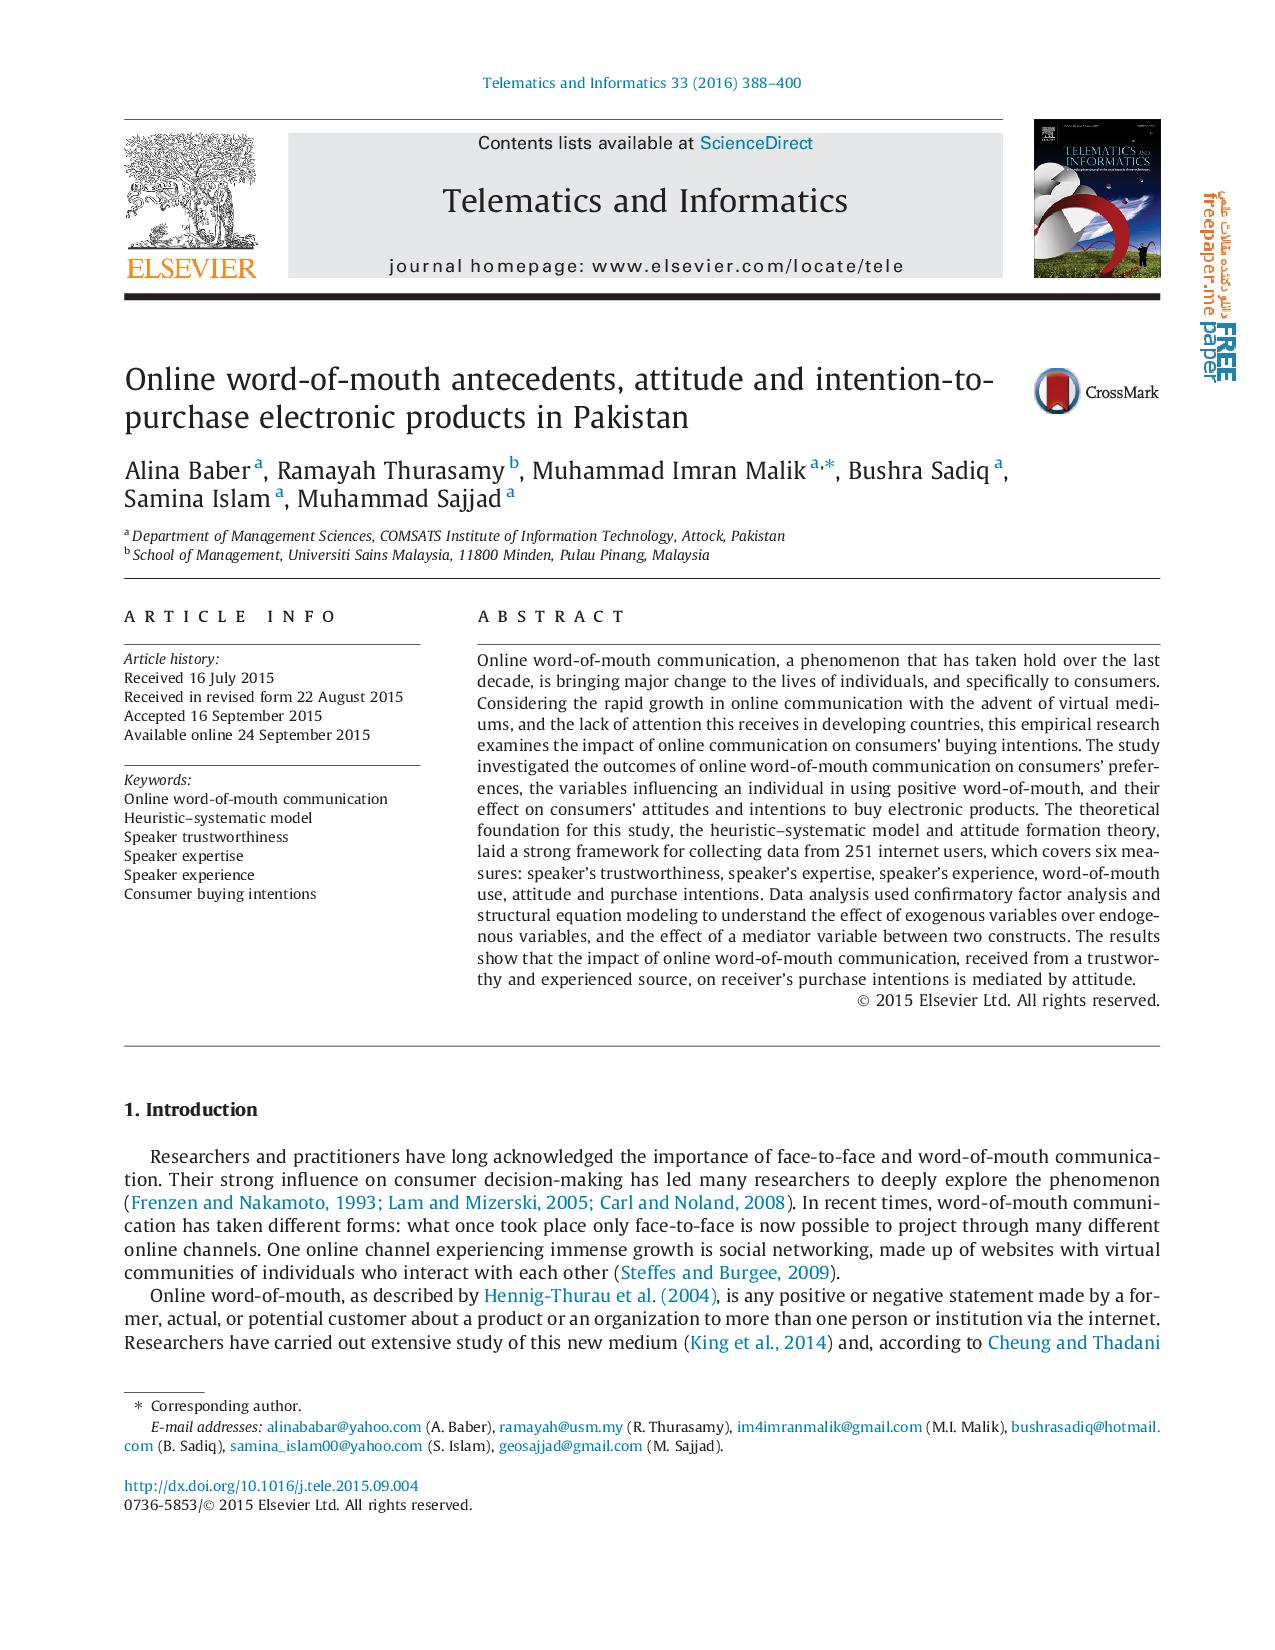 Online word-of-mouth antecedents, attitude and intention-topurchase electronic products in Pakistan